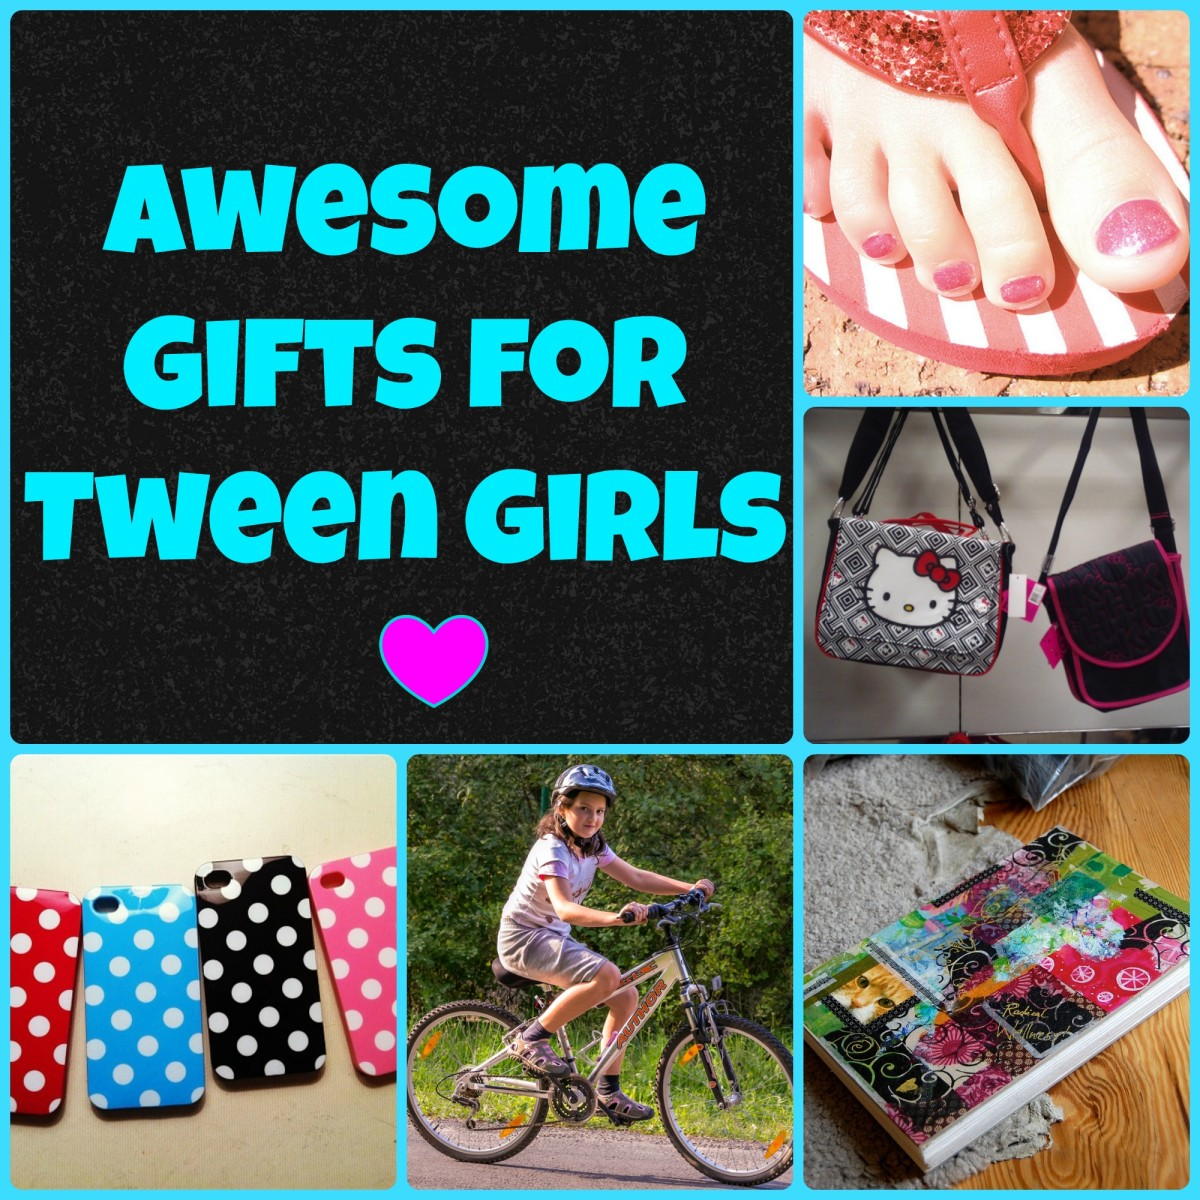 Awesome Gifts for Tweens!